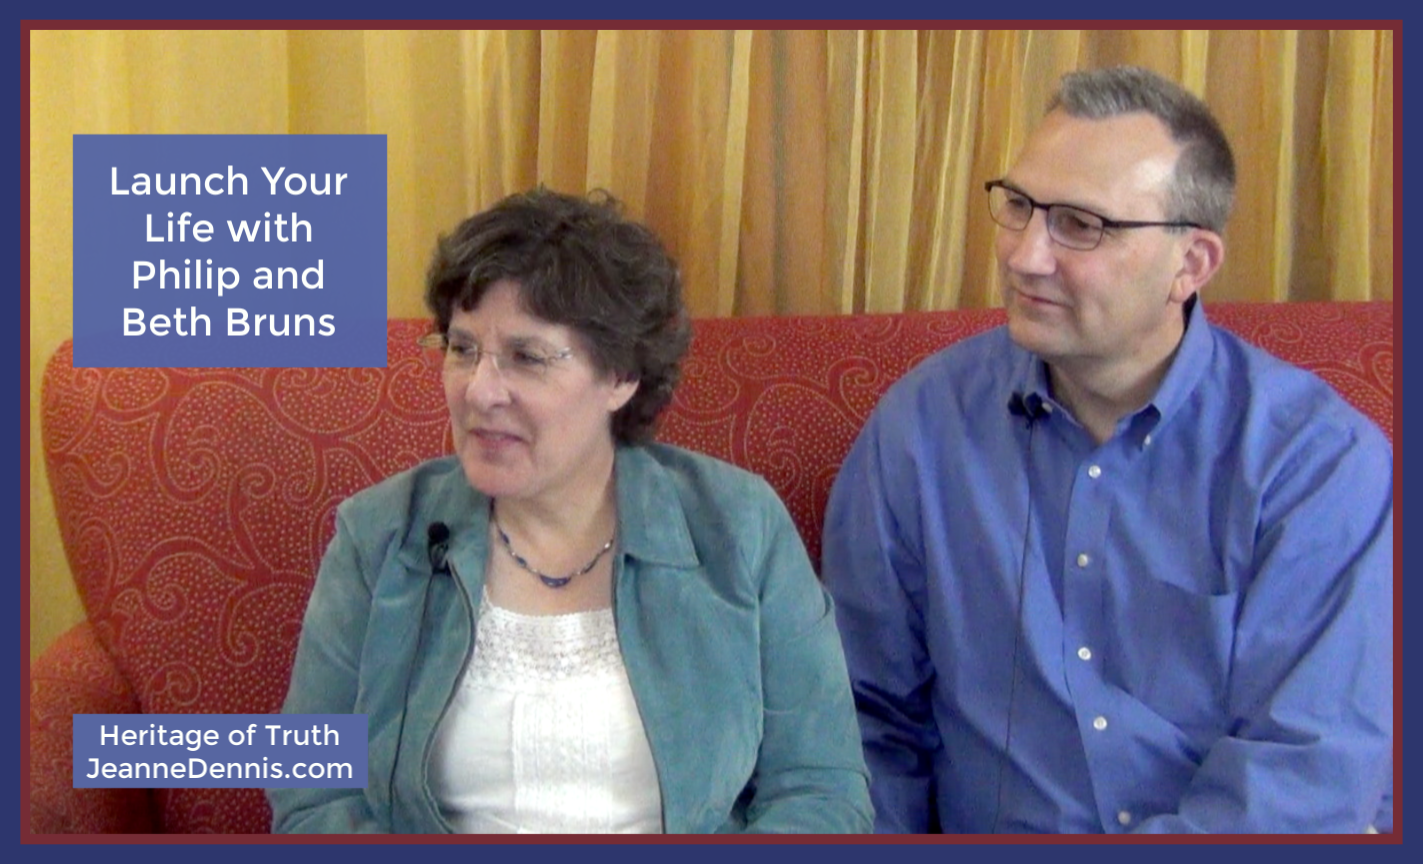 Launch Your Life with Philip and Beth Bruns, Heritage of Truth, JeanneDennis.com